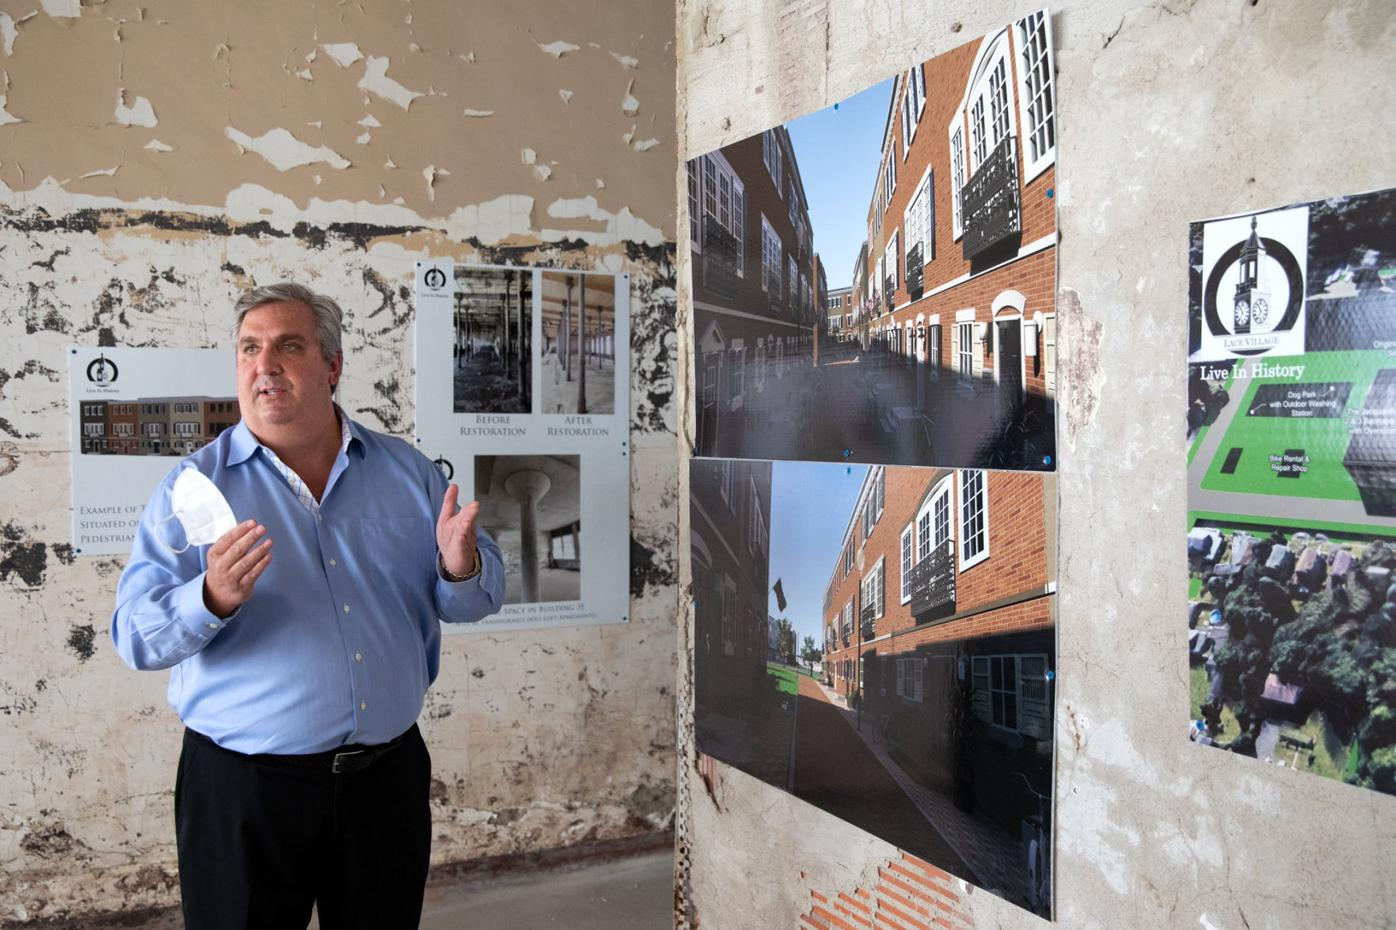 With passion for historic redevelopment, Rinaldi takes on big projects